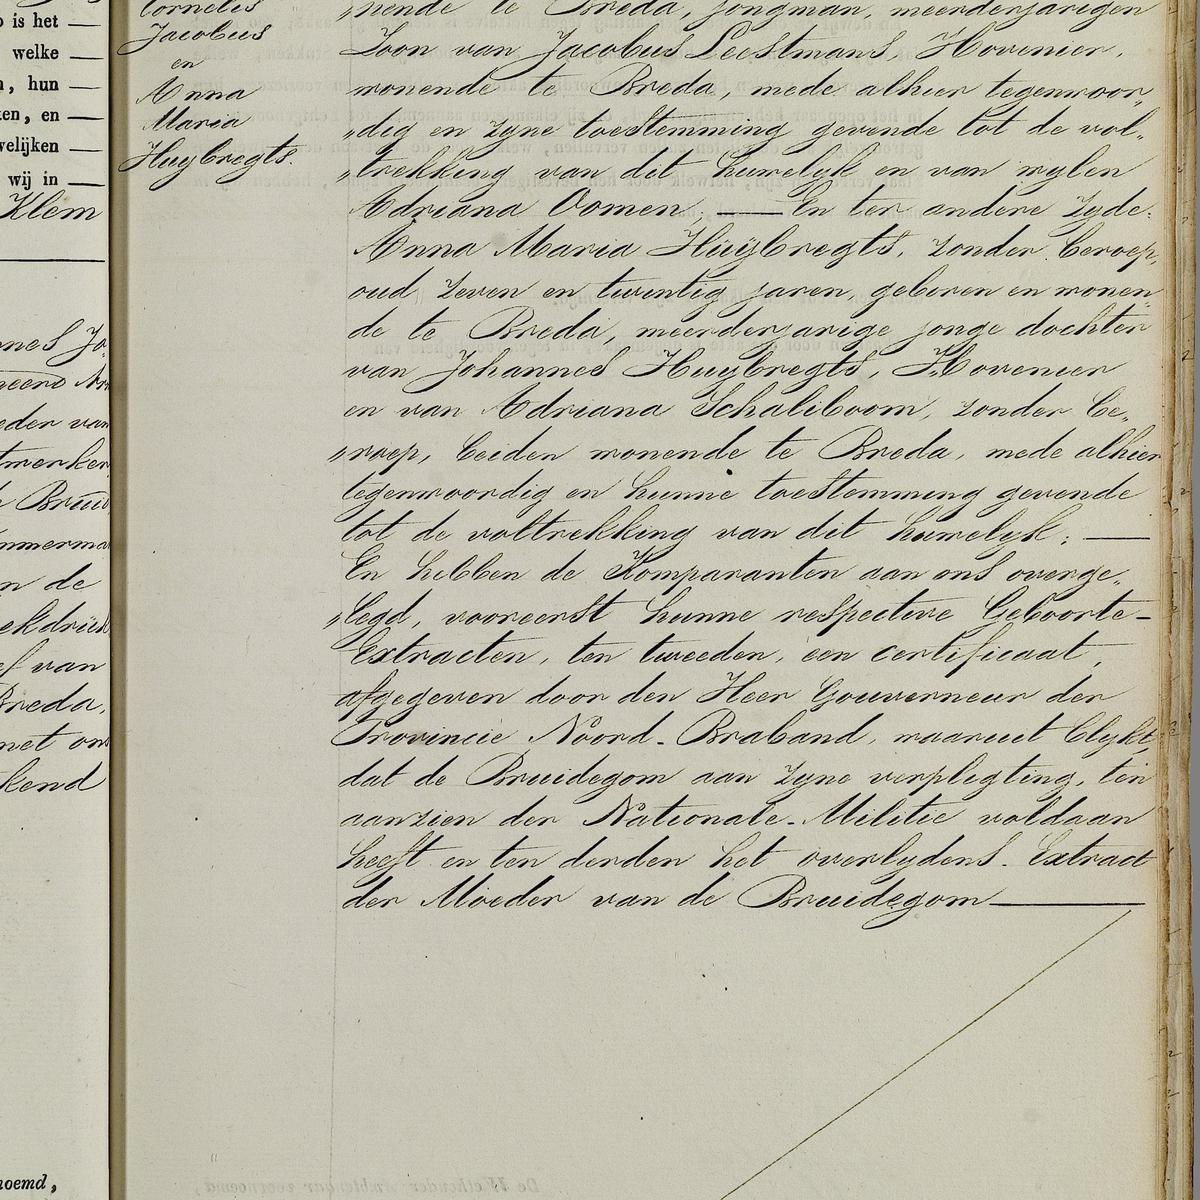 Civil registry of marriages, Breda, 1846, record 74, right page